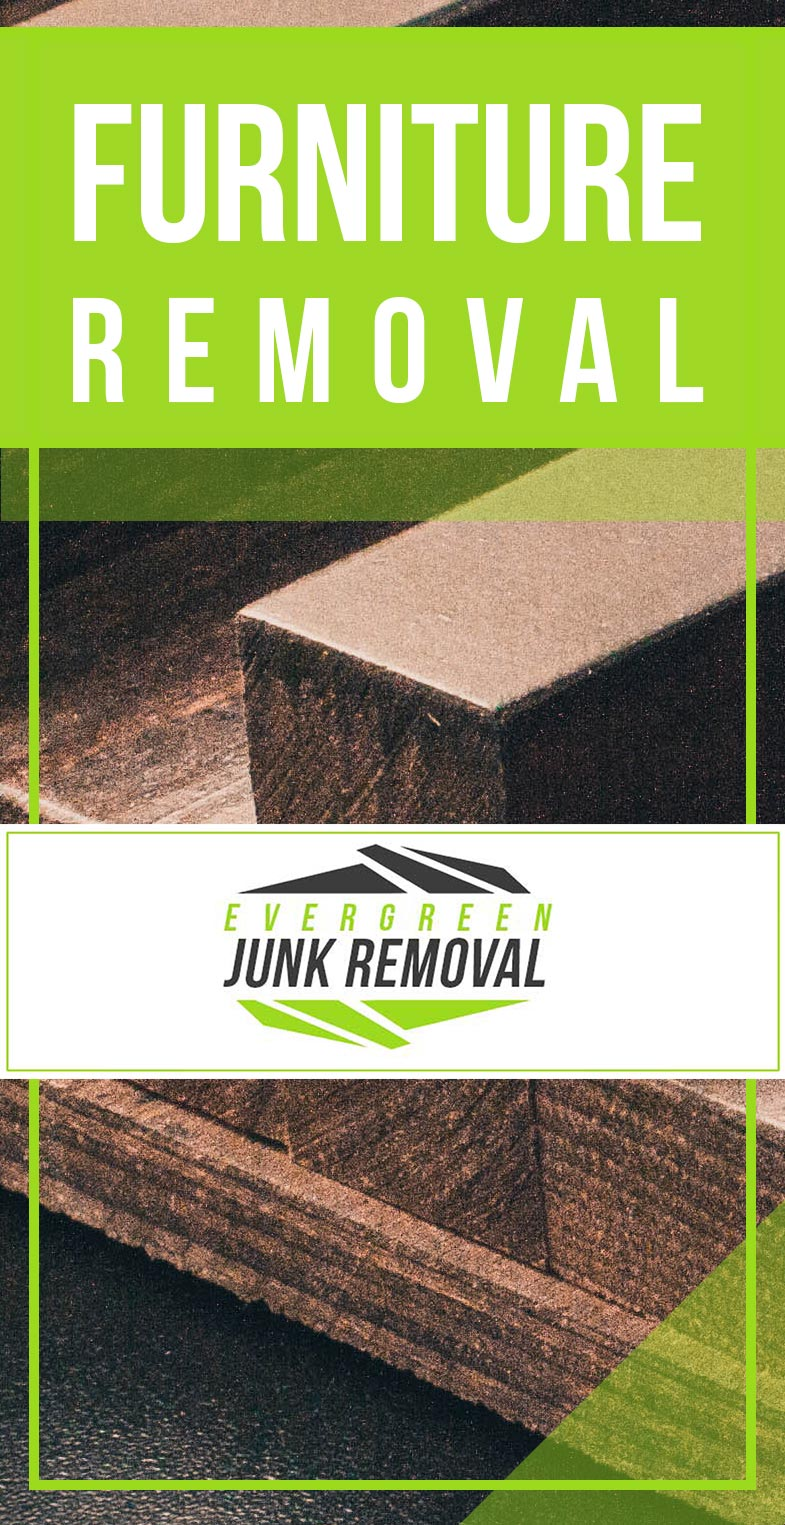 Lake Stevens Furniture Removal